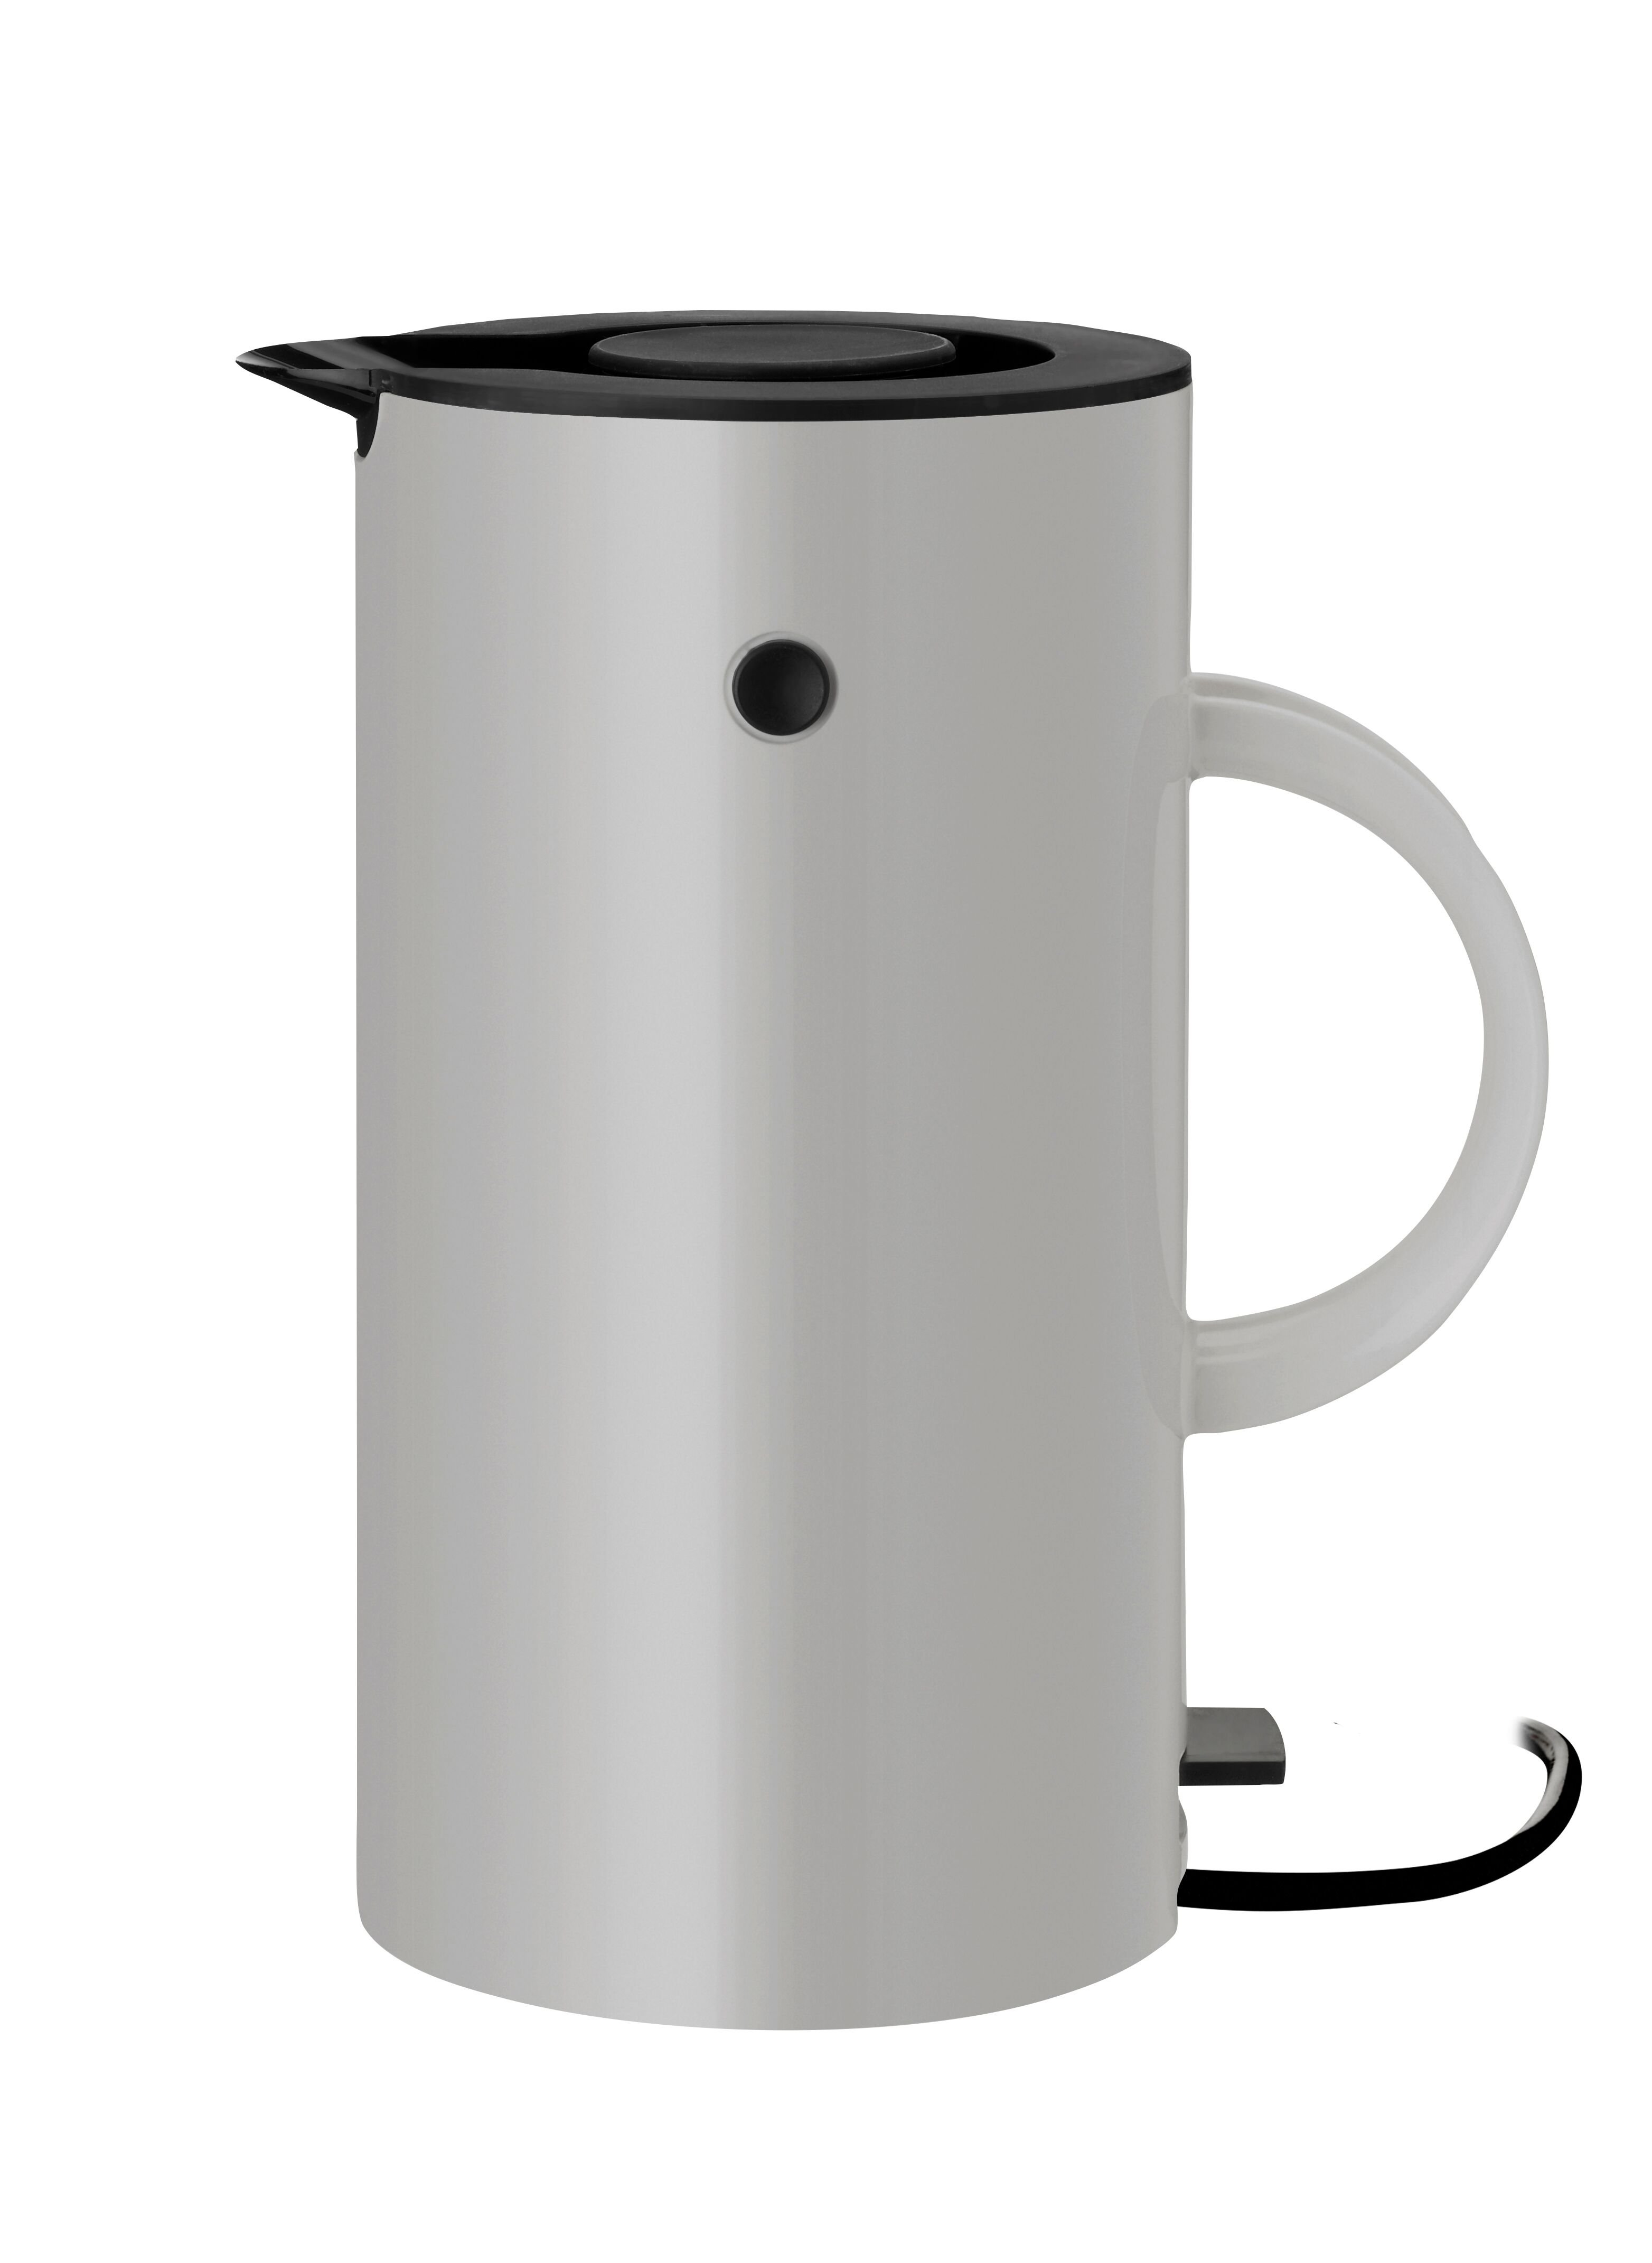 Stelton - EM77 Electric Kettle 1,5 L - Light Grey (890-2)